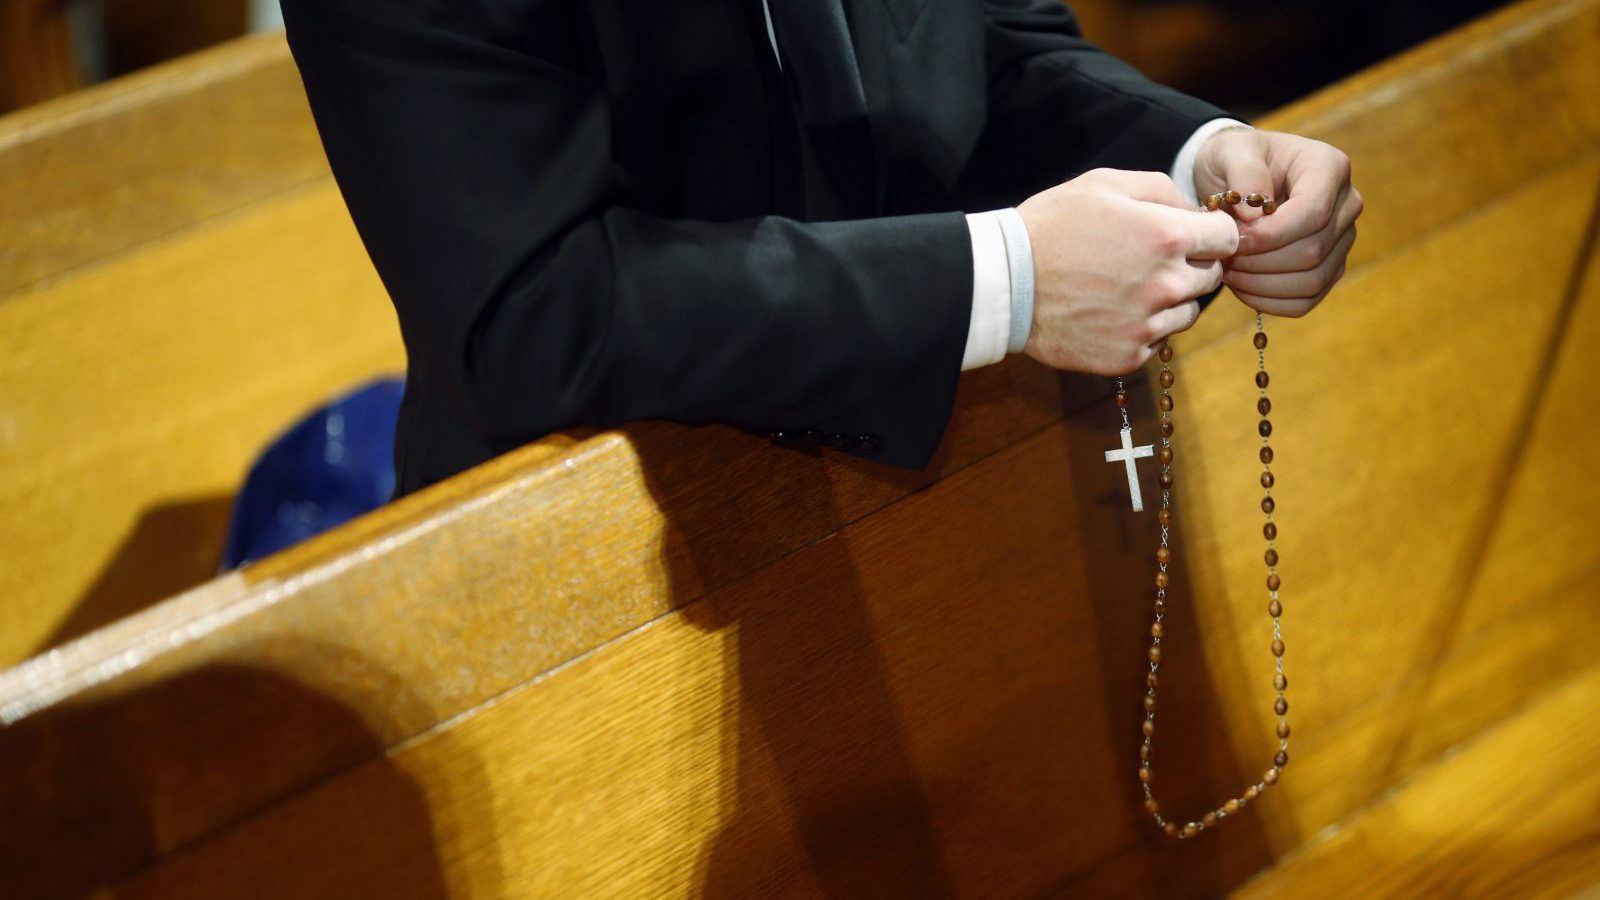 Seminarian Mark Mergner prays the rosary as he awaits Pope Francis' arrival at the Basilica of the National Shrine of the Immaculate Conception in Washington September 23, 2015. REUTERS/Patrick Semansky/Pool - RTX1S48L